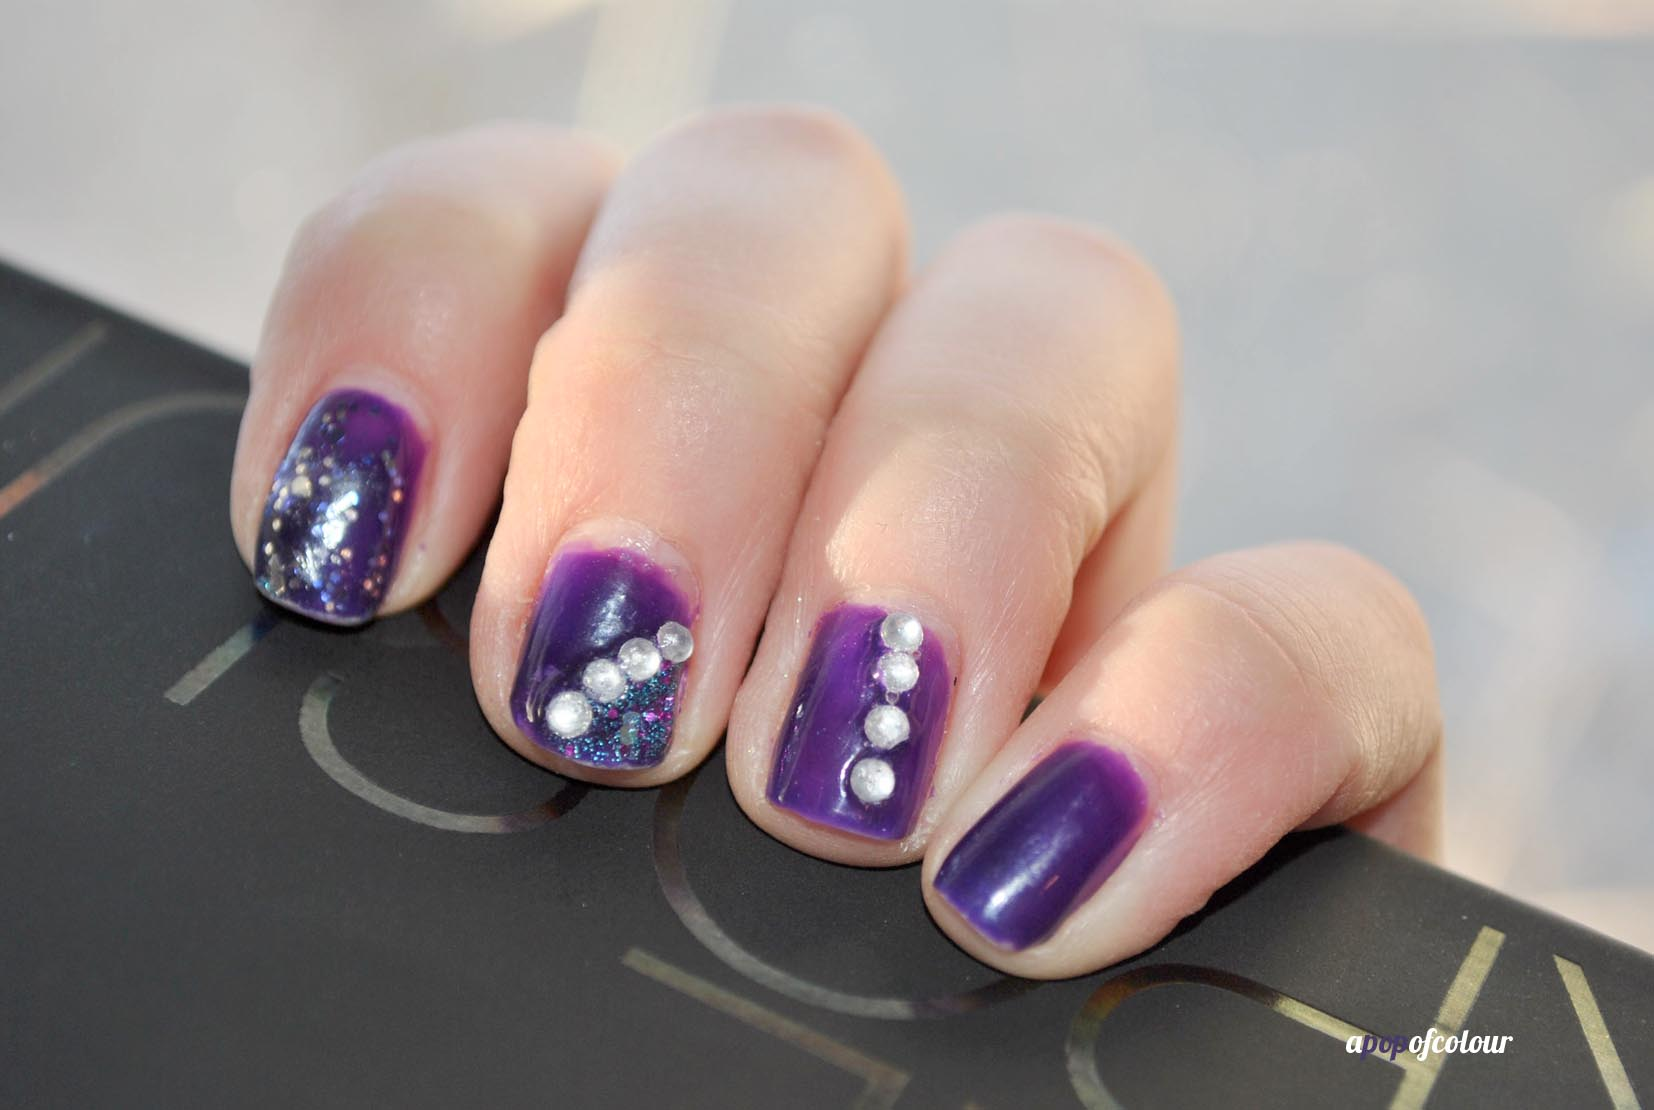 65 latest purple nail art designs for trendy girls purple nails with rhinestones design nail art idea prinsesfo Choice Image